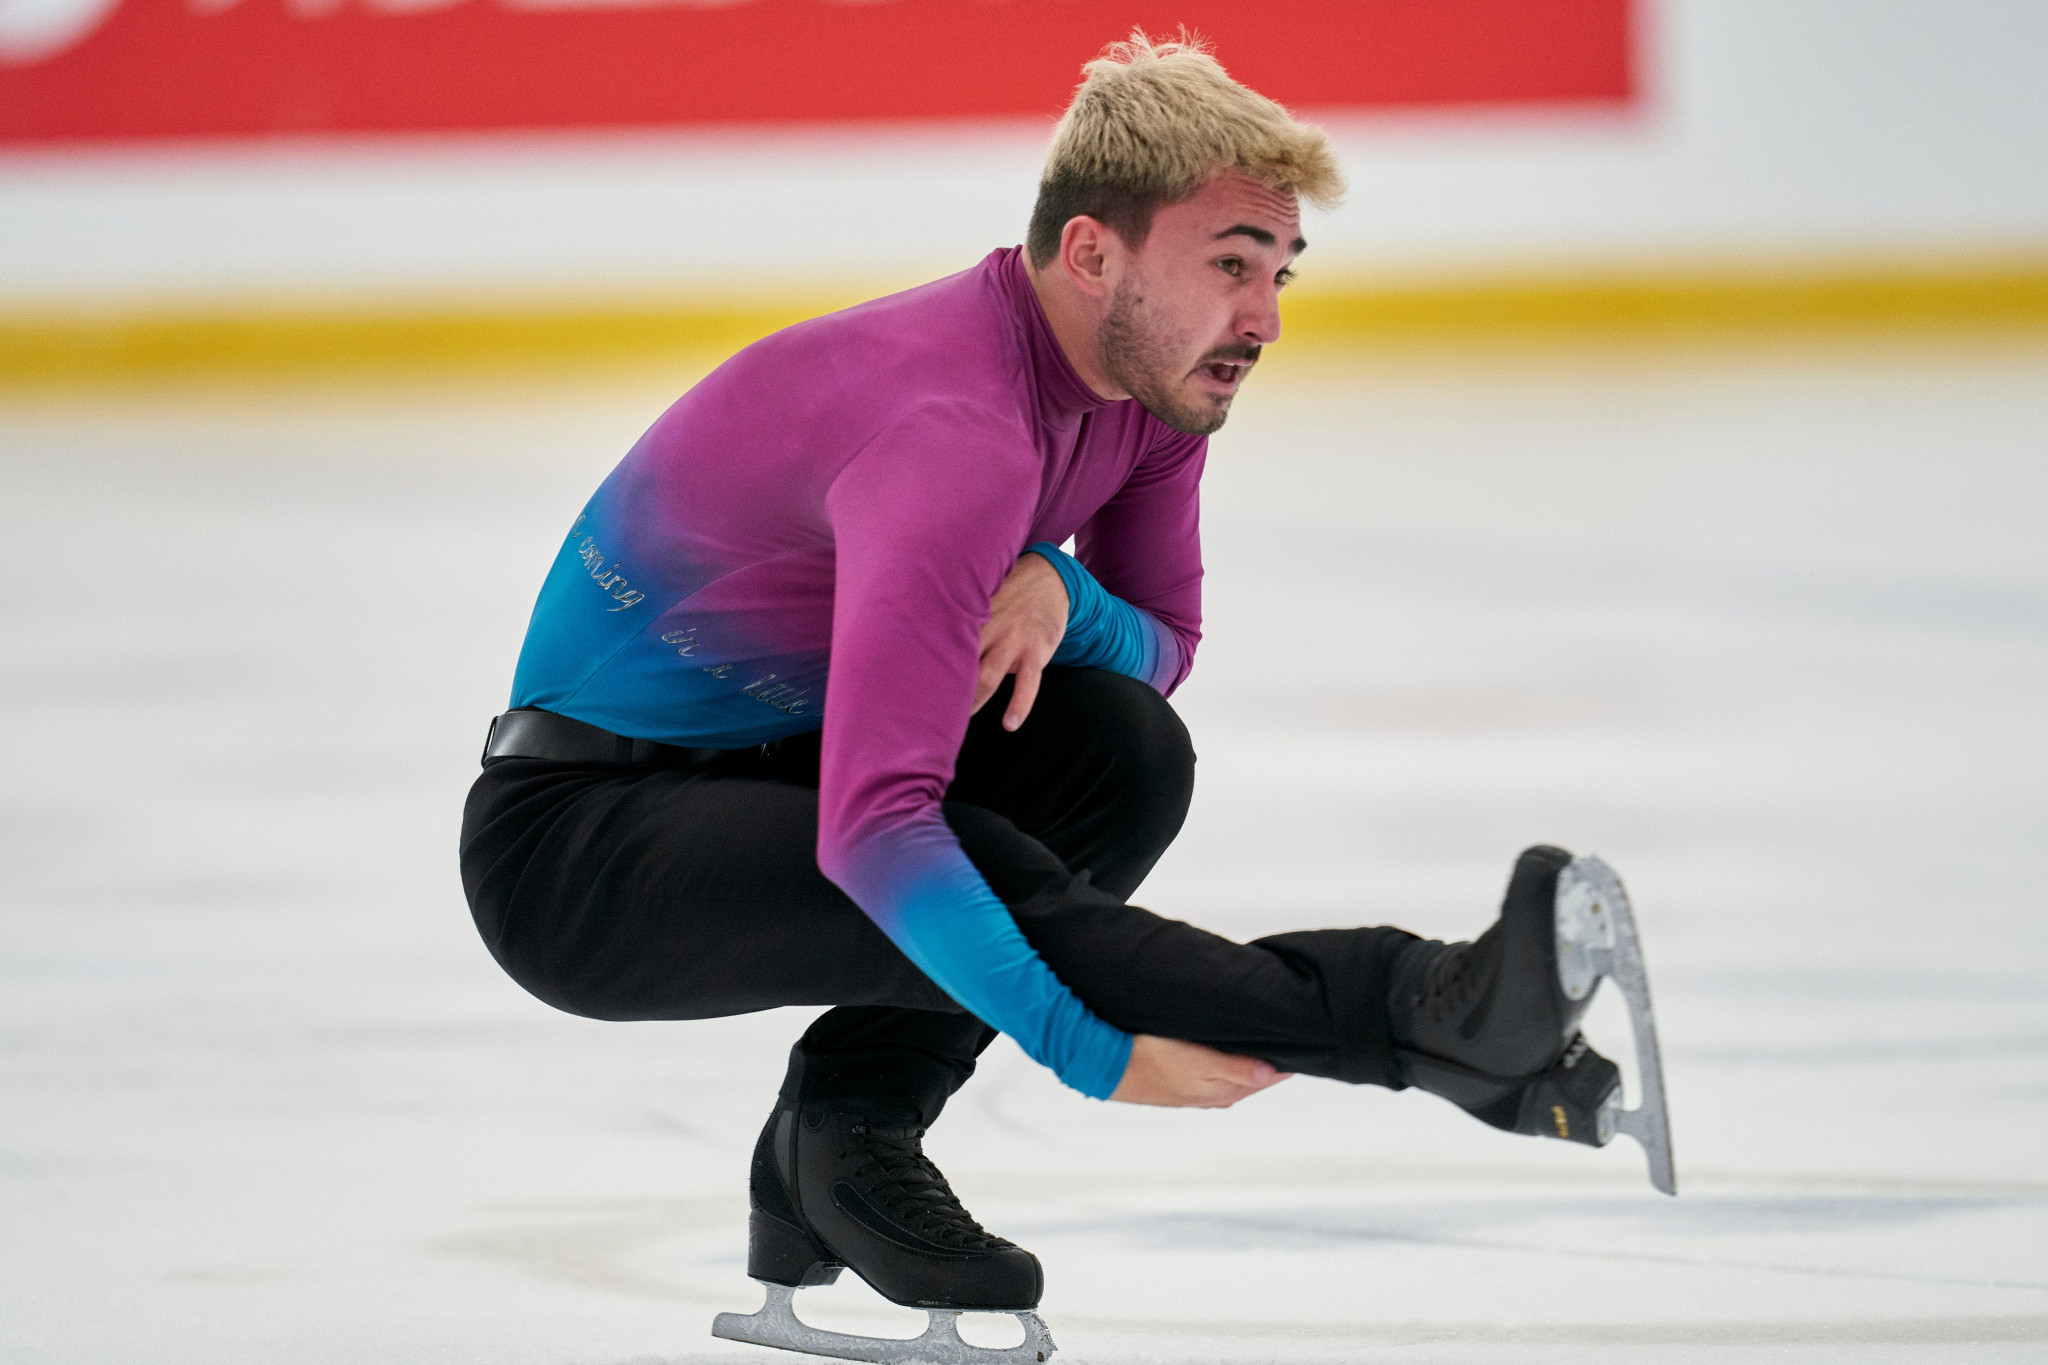 Fernández retirement leaves men's singles title up for grabs at ISU European Figure Skating Championships